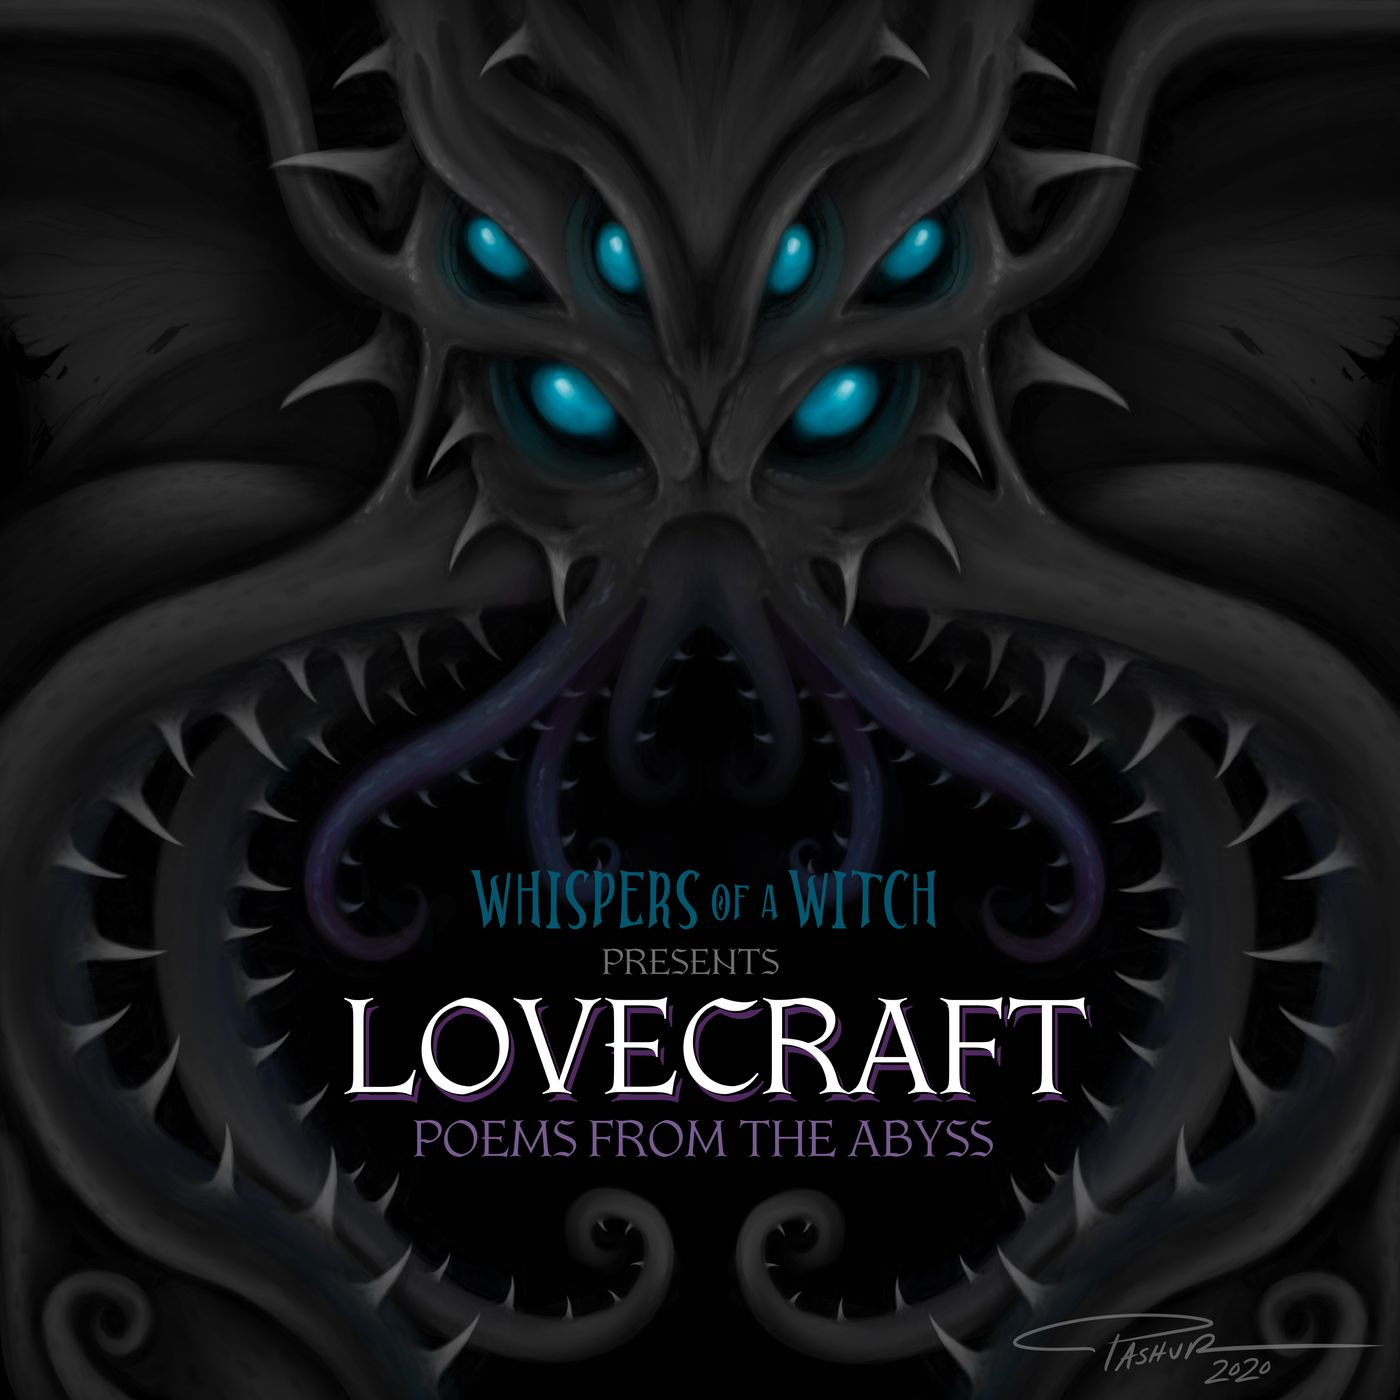 Lovecraft Poems From The Abyss: Whispers of a Witch